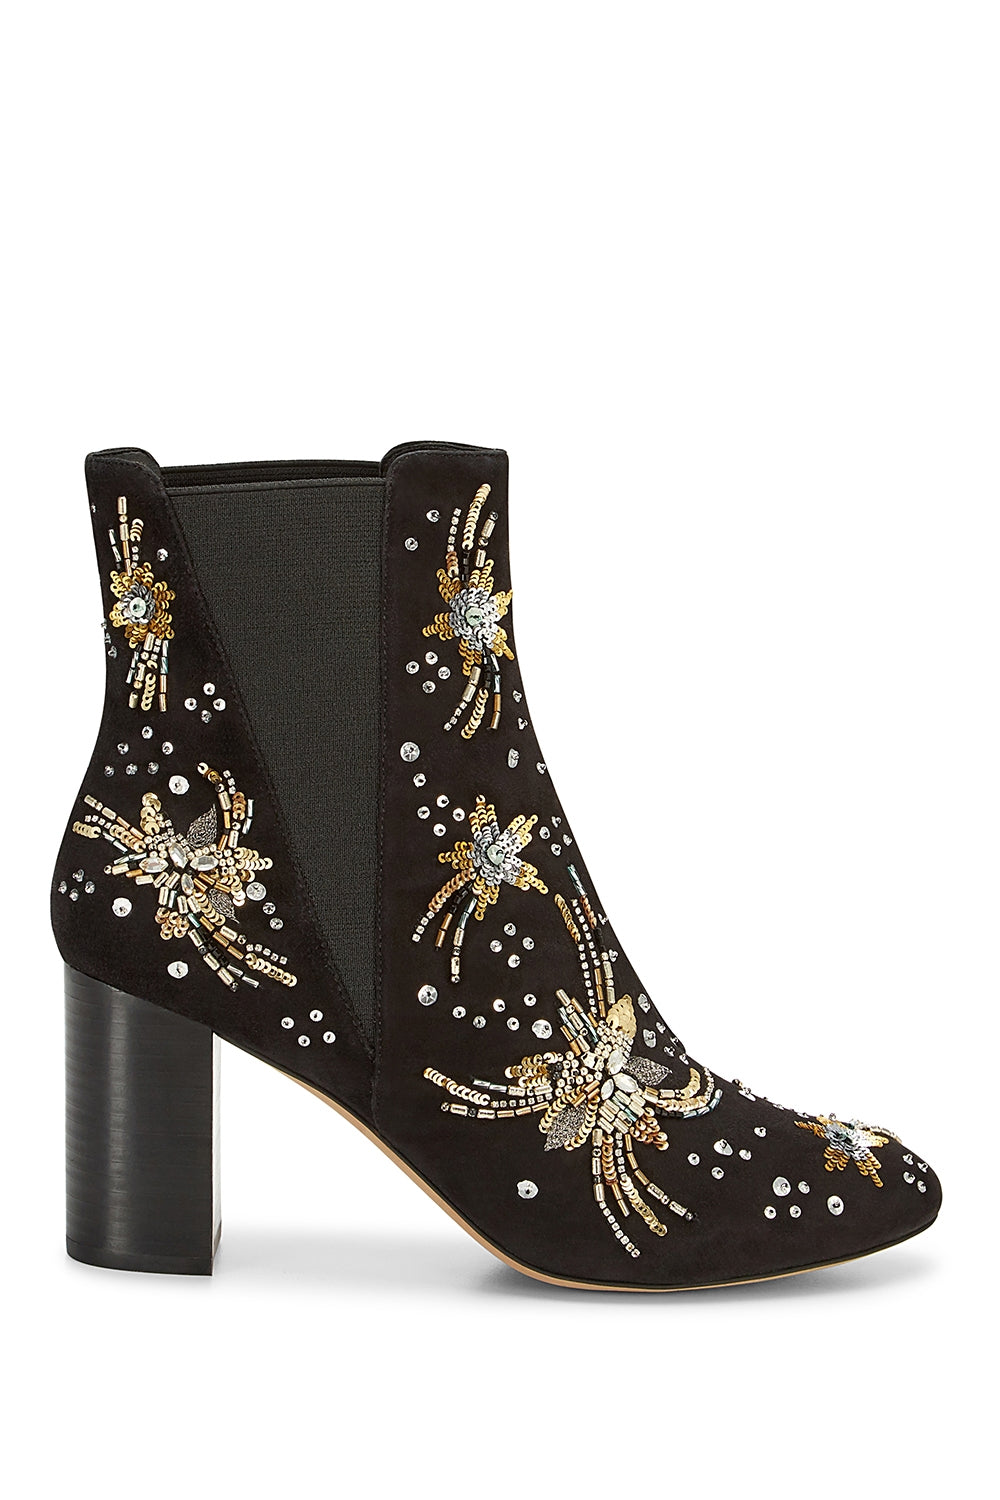 Serena Embroidery Bootie in Black